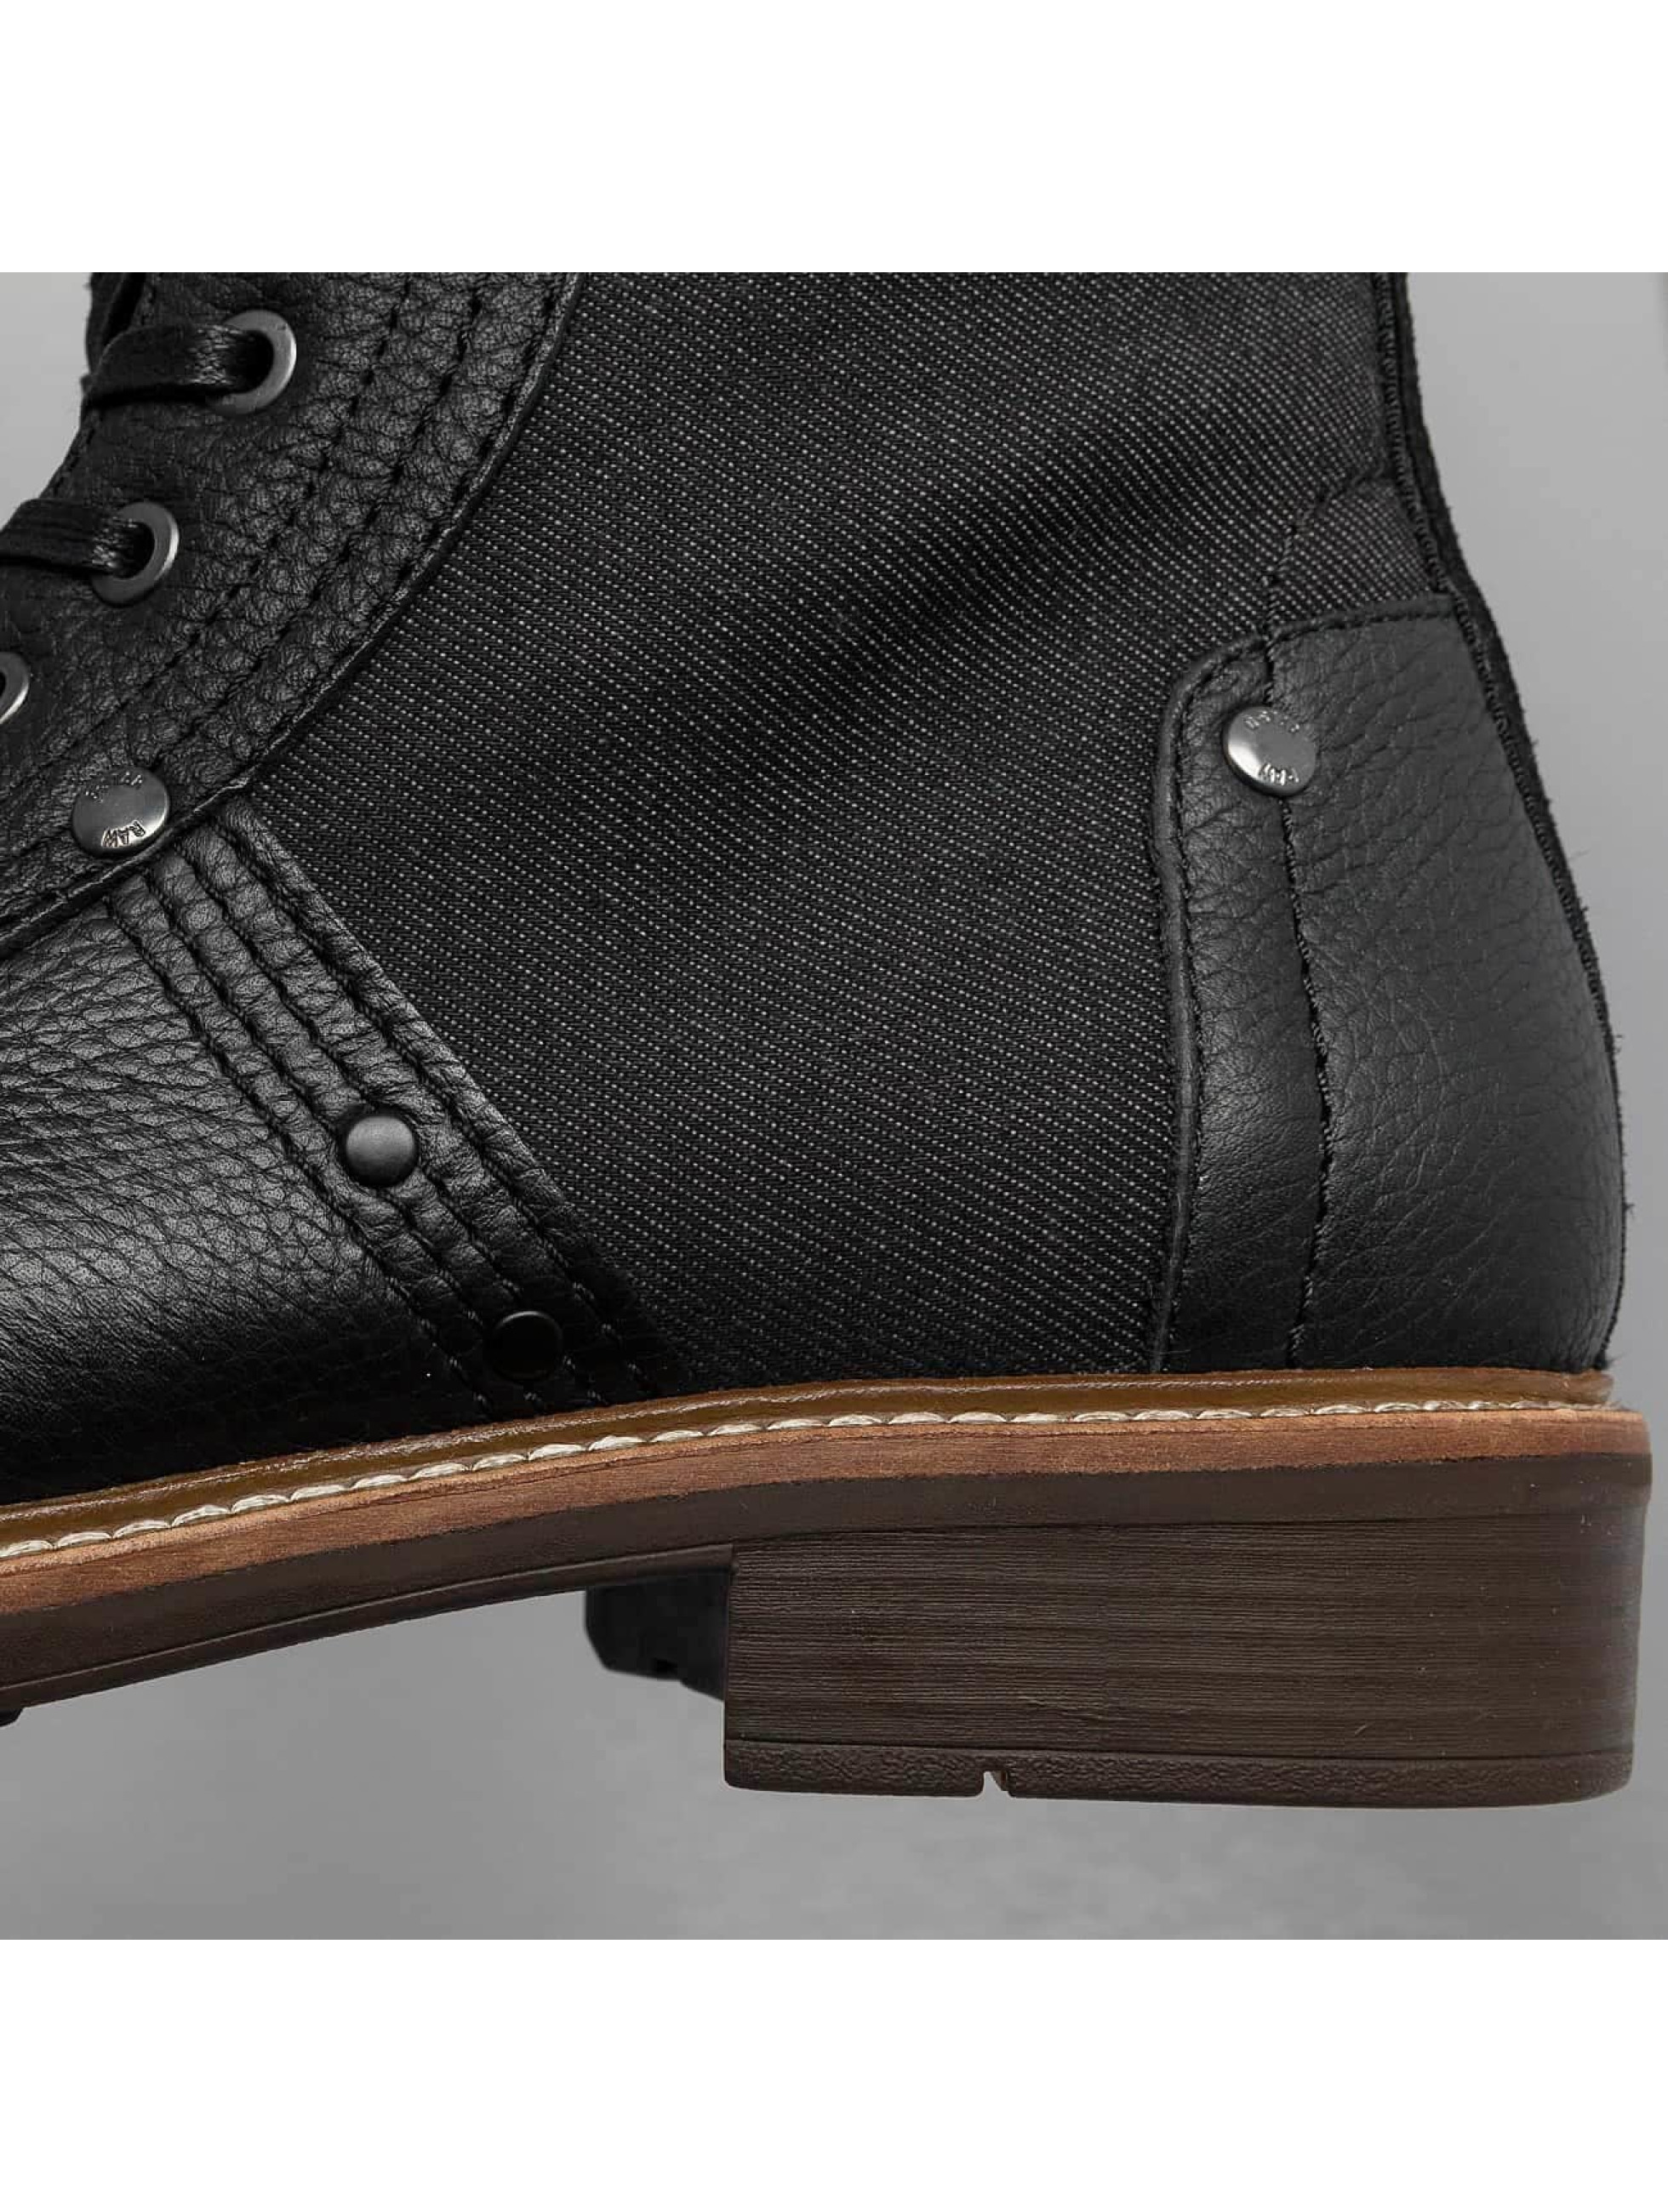 G-Star Footwear Boots Labour Leather negro